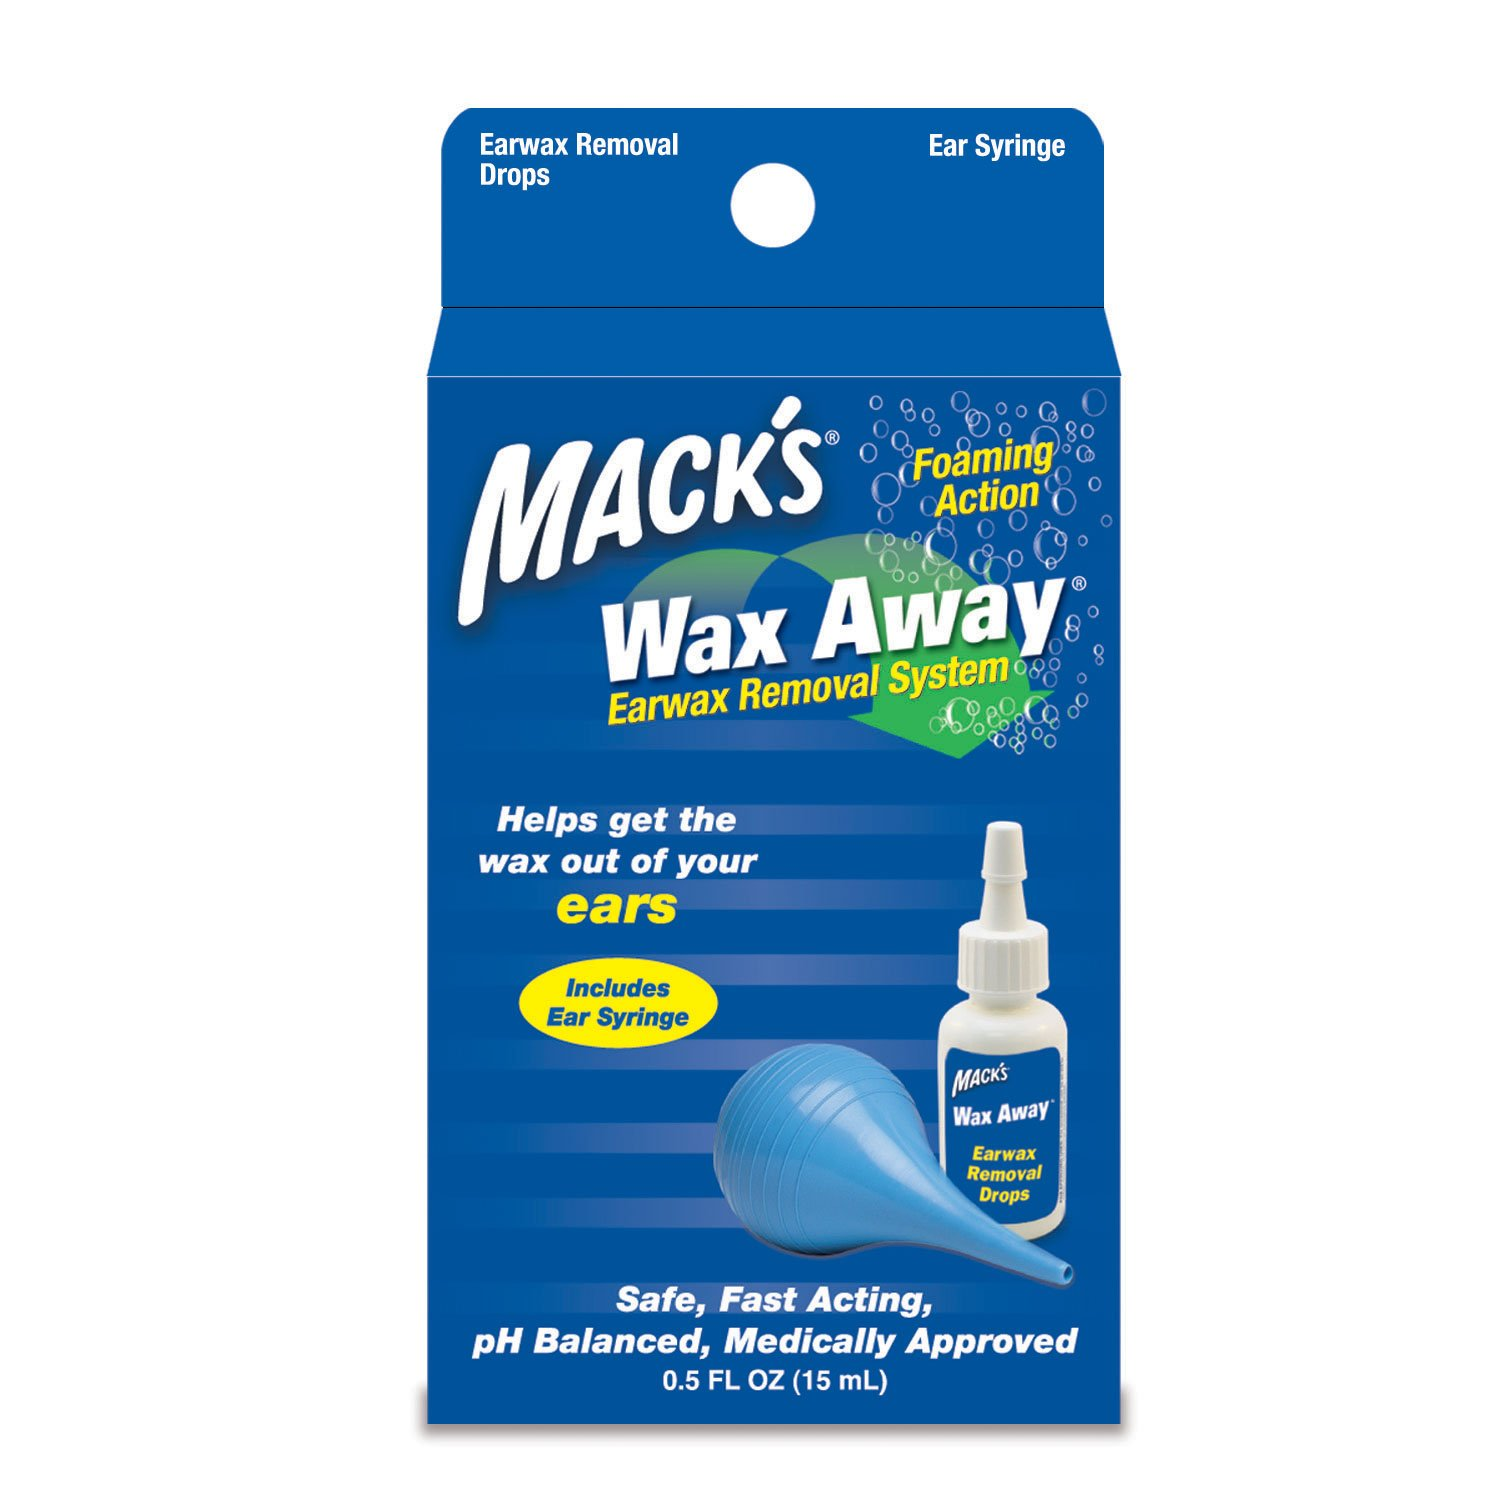 Mack's Wax Away Earwax Removal System - 0.5 FL OZ Ear Drops with Ear Syringe Mack's B004CK5M4S